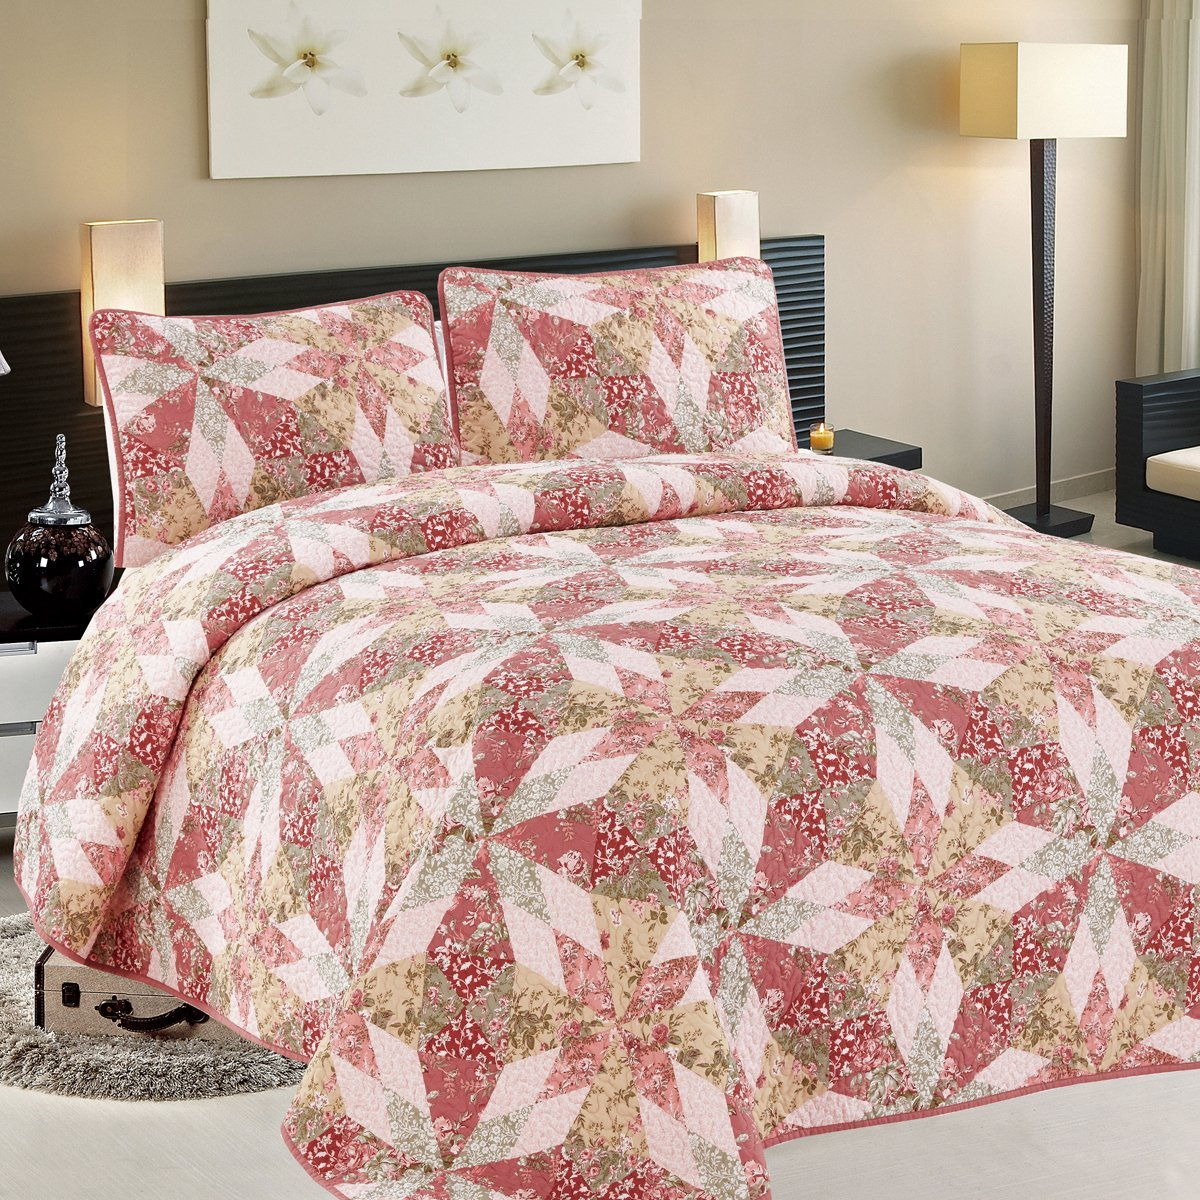 3 PC Soft Floral Print Quilt Set, Coverlet & Throw, King